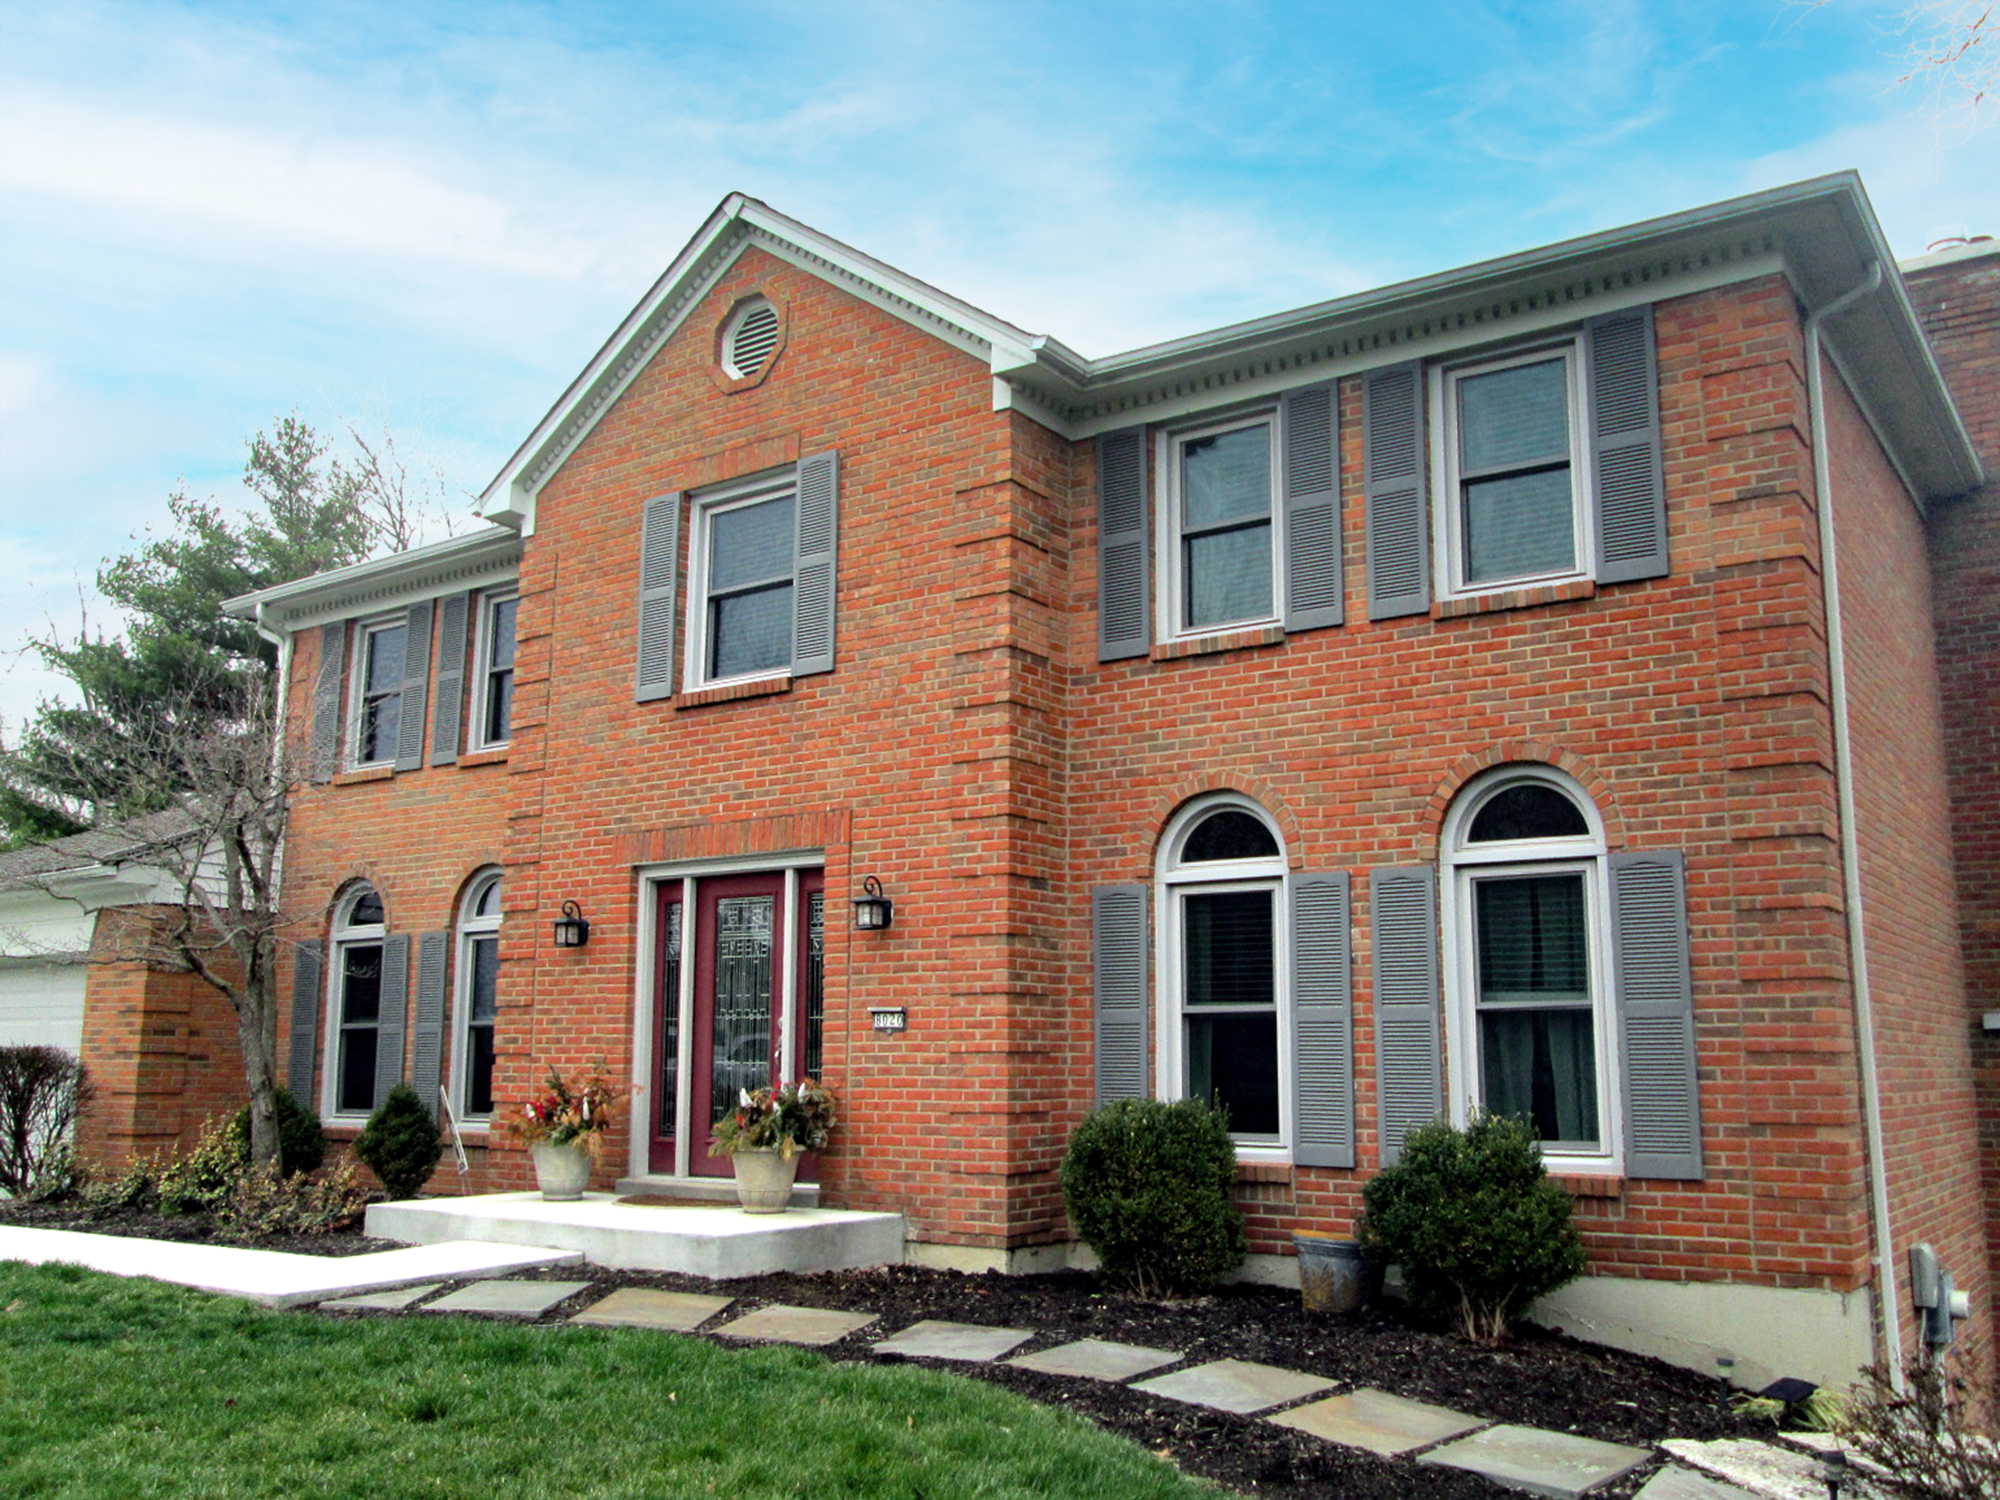 Existing home exterior residential architecture